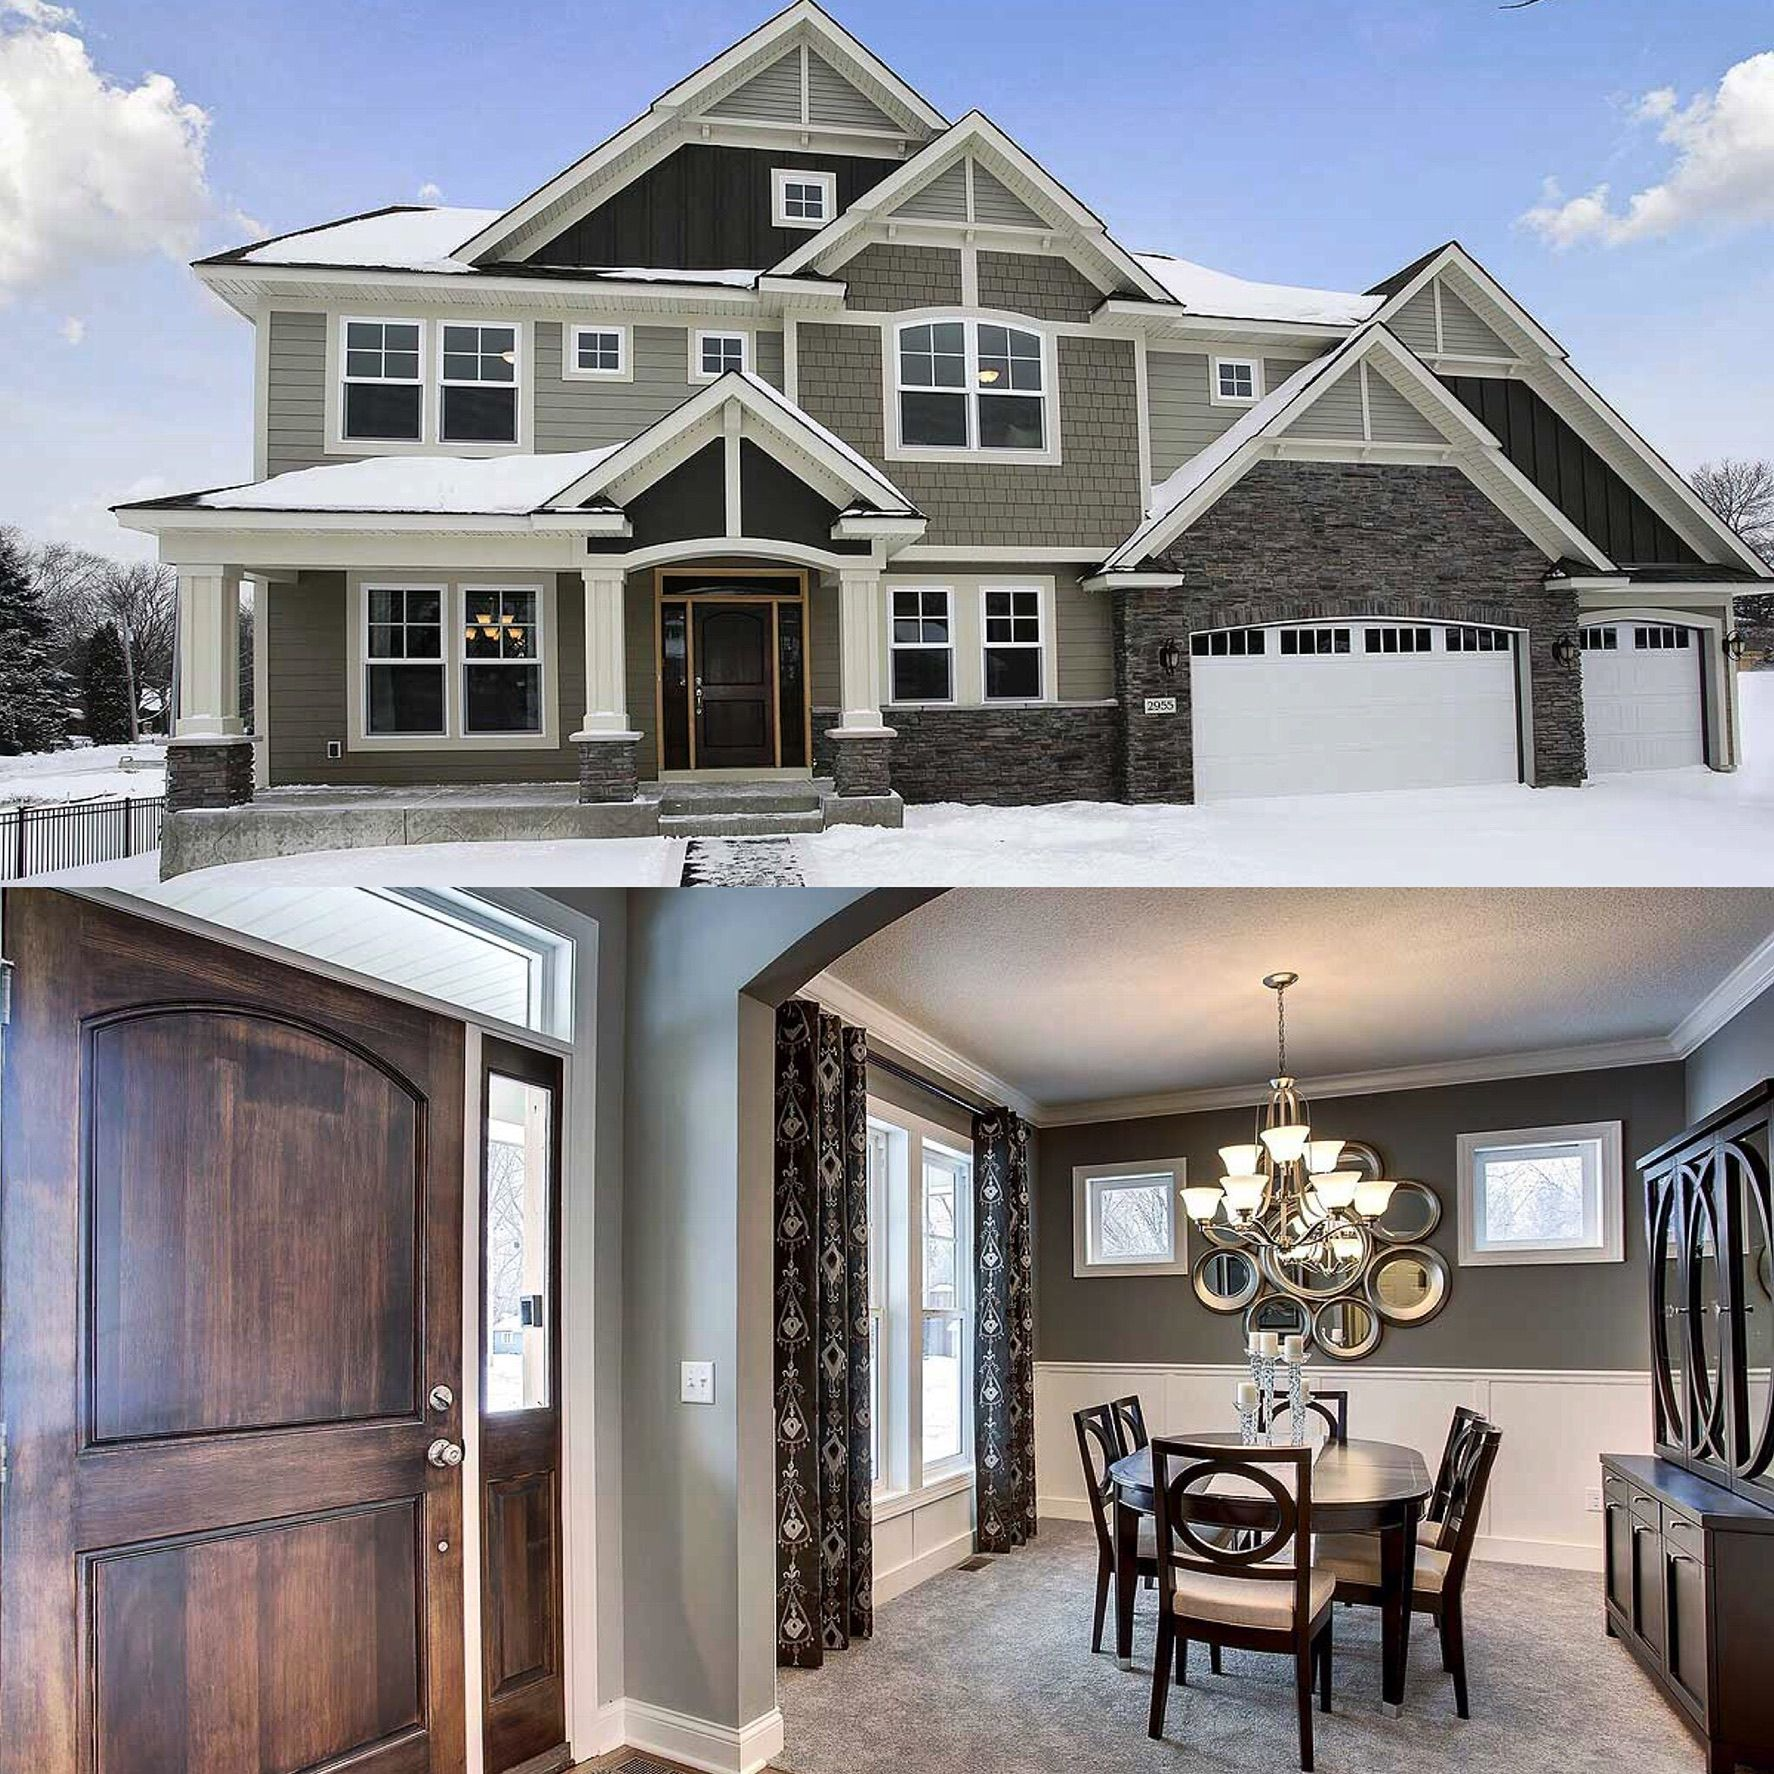 Cold outside cozy inside architectural designs exclusive house plan hs beds and square feet ready when you are also rh co pinterest